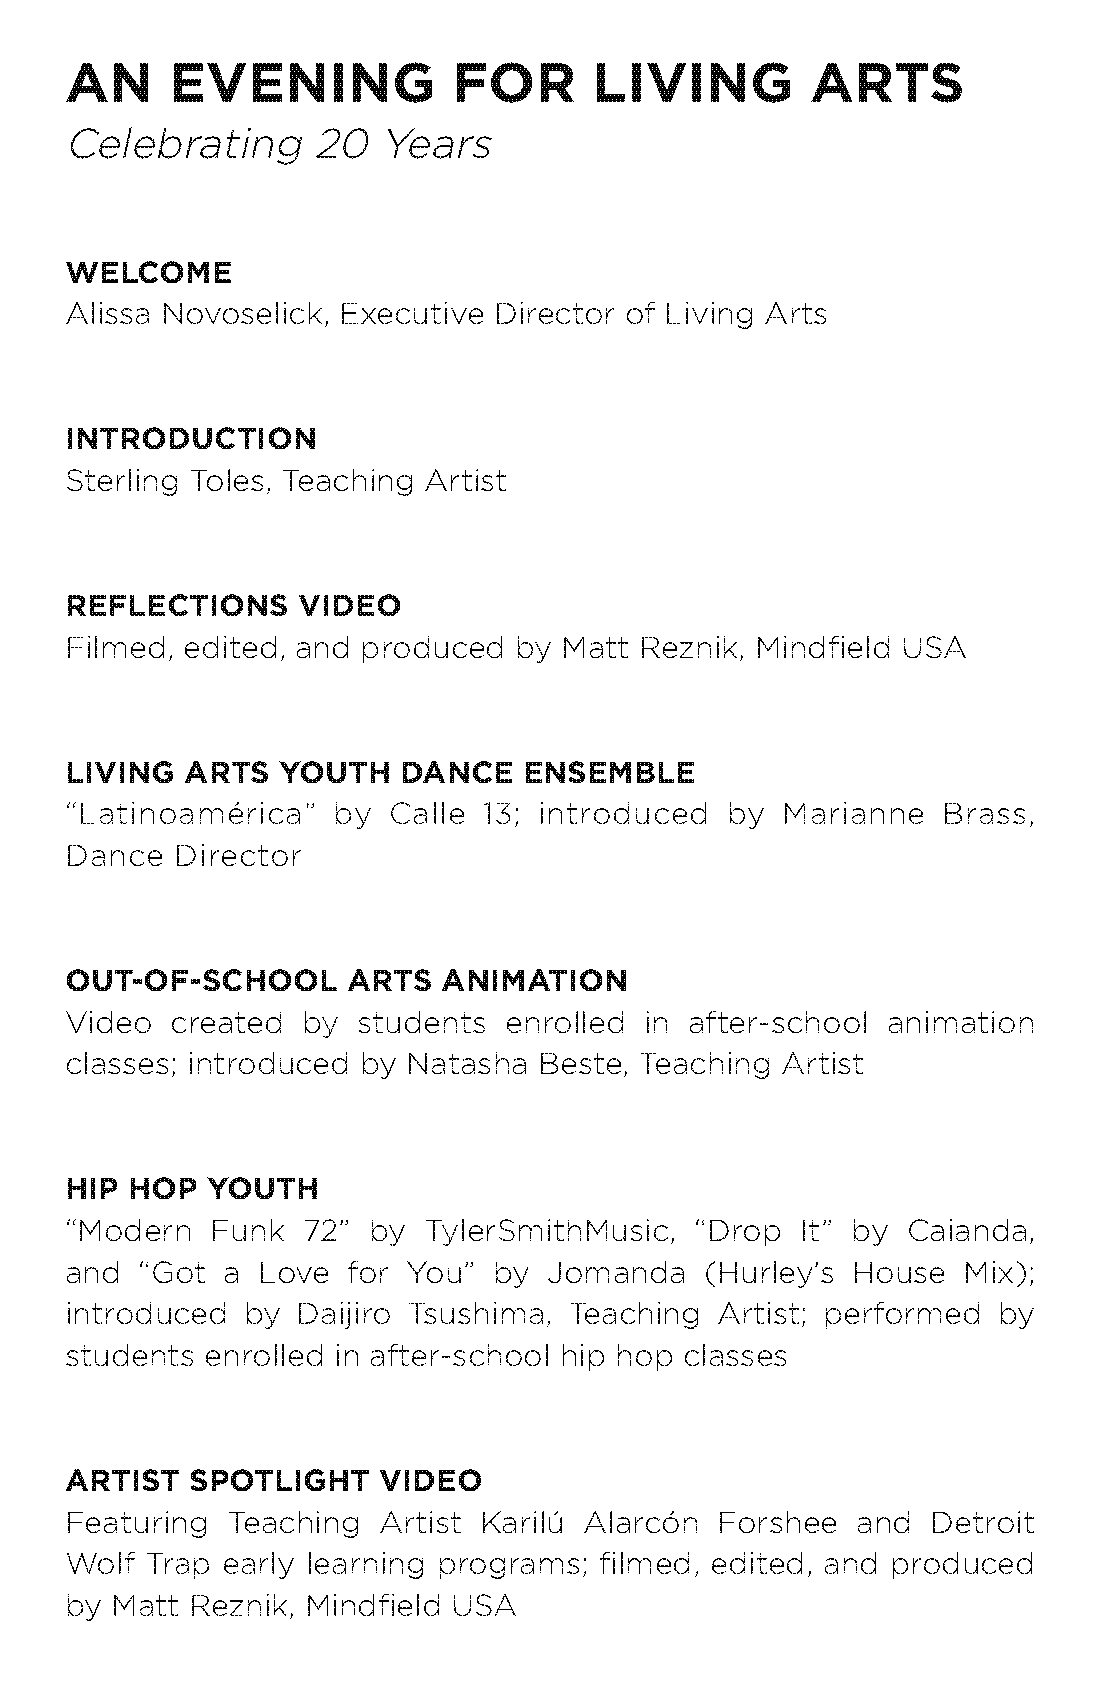 An Evening for Living Arts Booklet 2019 (FINAL DRAFT)_Page_04.png